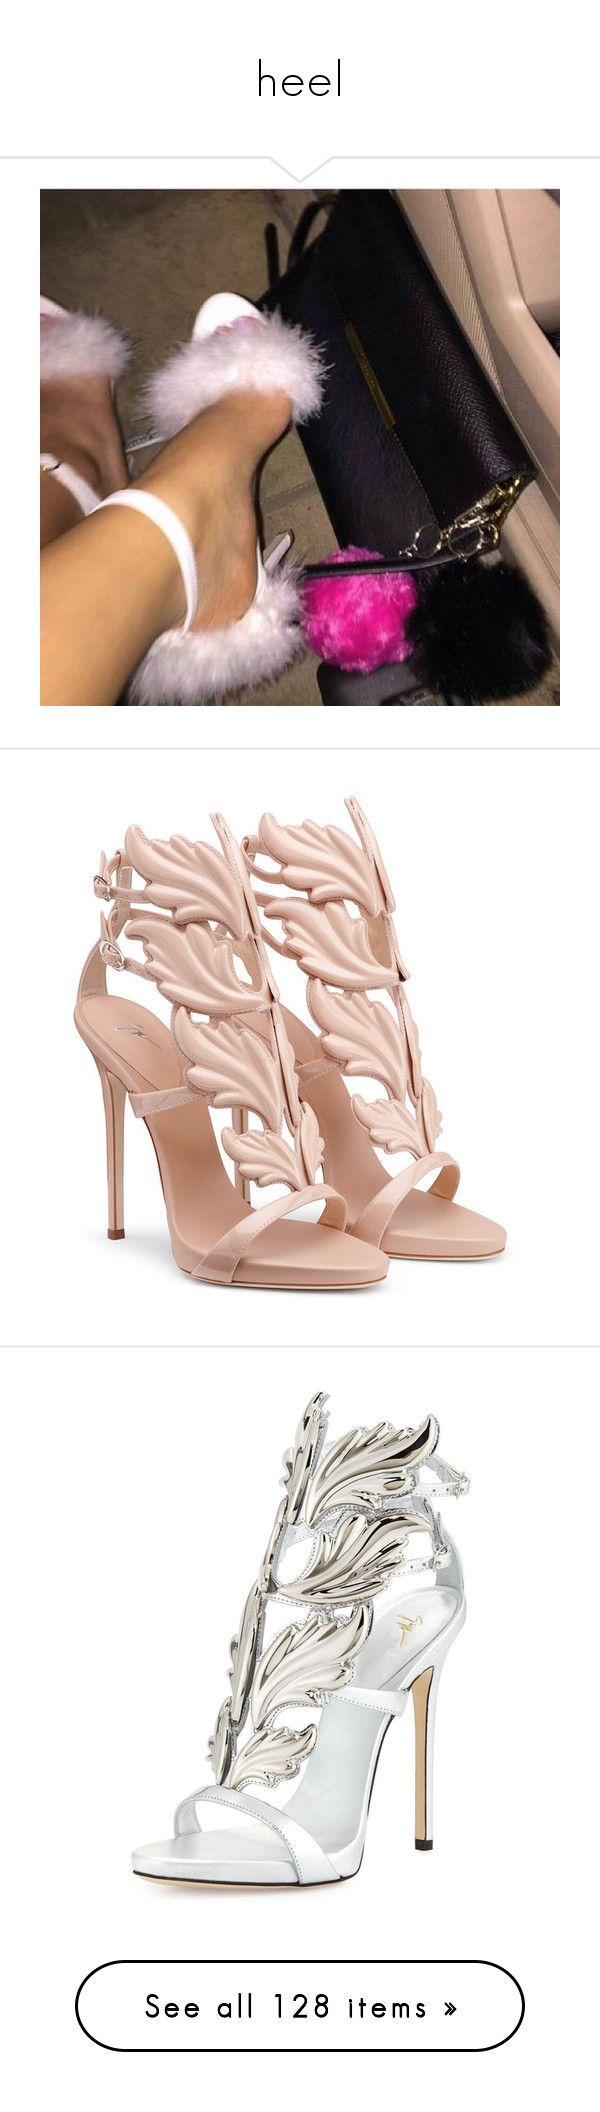 """""""heel"""" by kalis147 ❤ liked on Polyvore featuring shoes, sandals, heels, gladiator sandals shoes, roman sandals, heeled sandals, greek sandals, gladiator heel sandals, argento and platform heel sandals"""